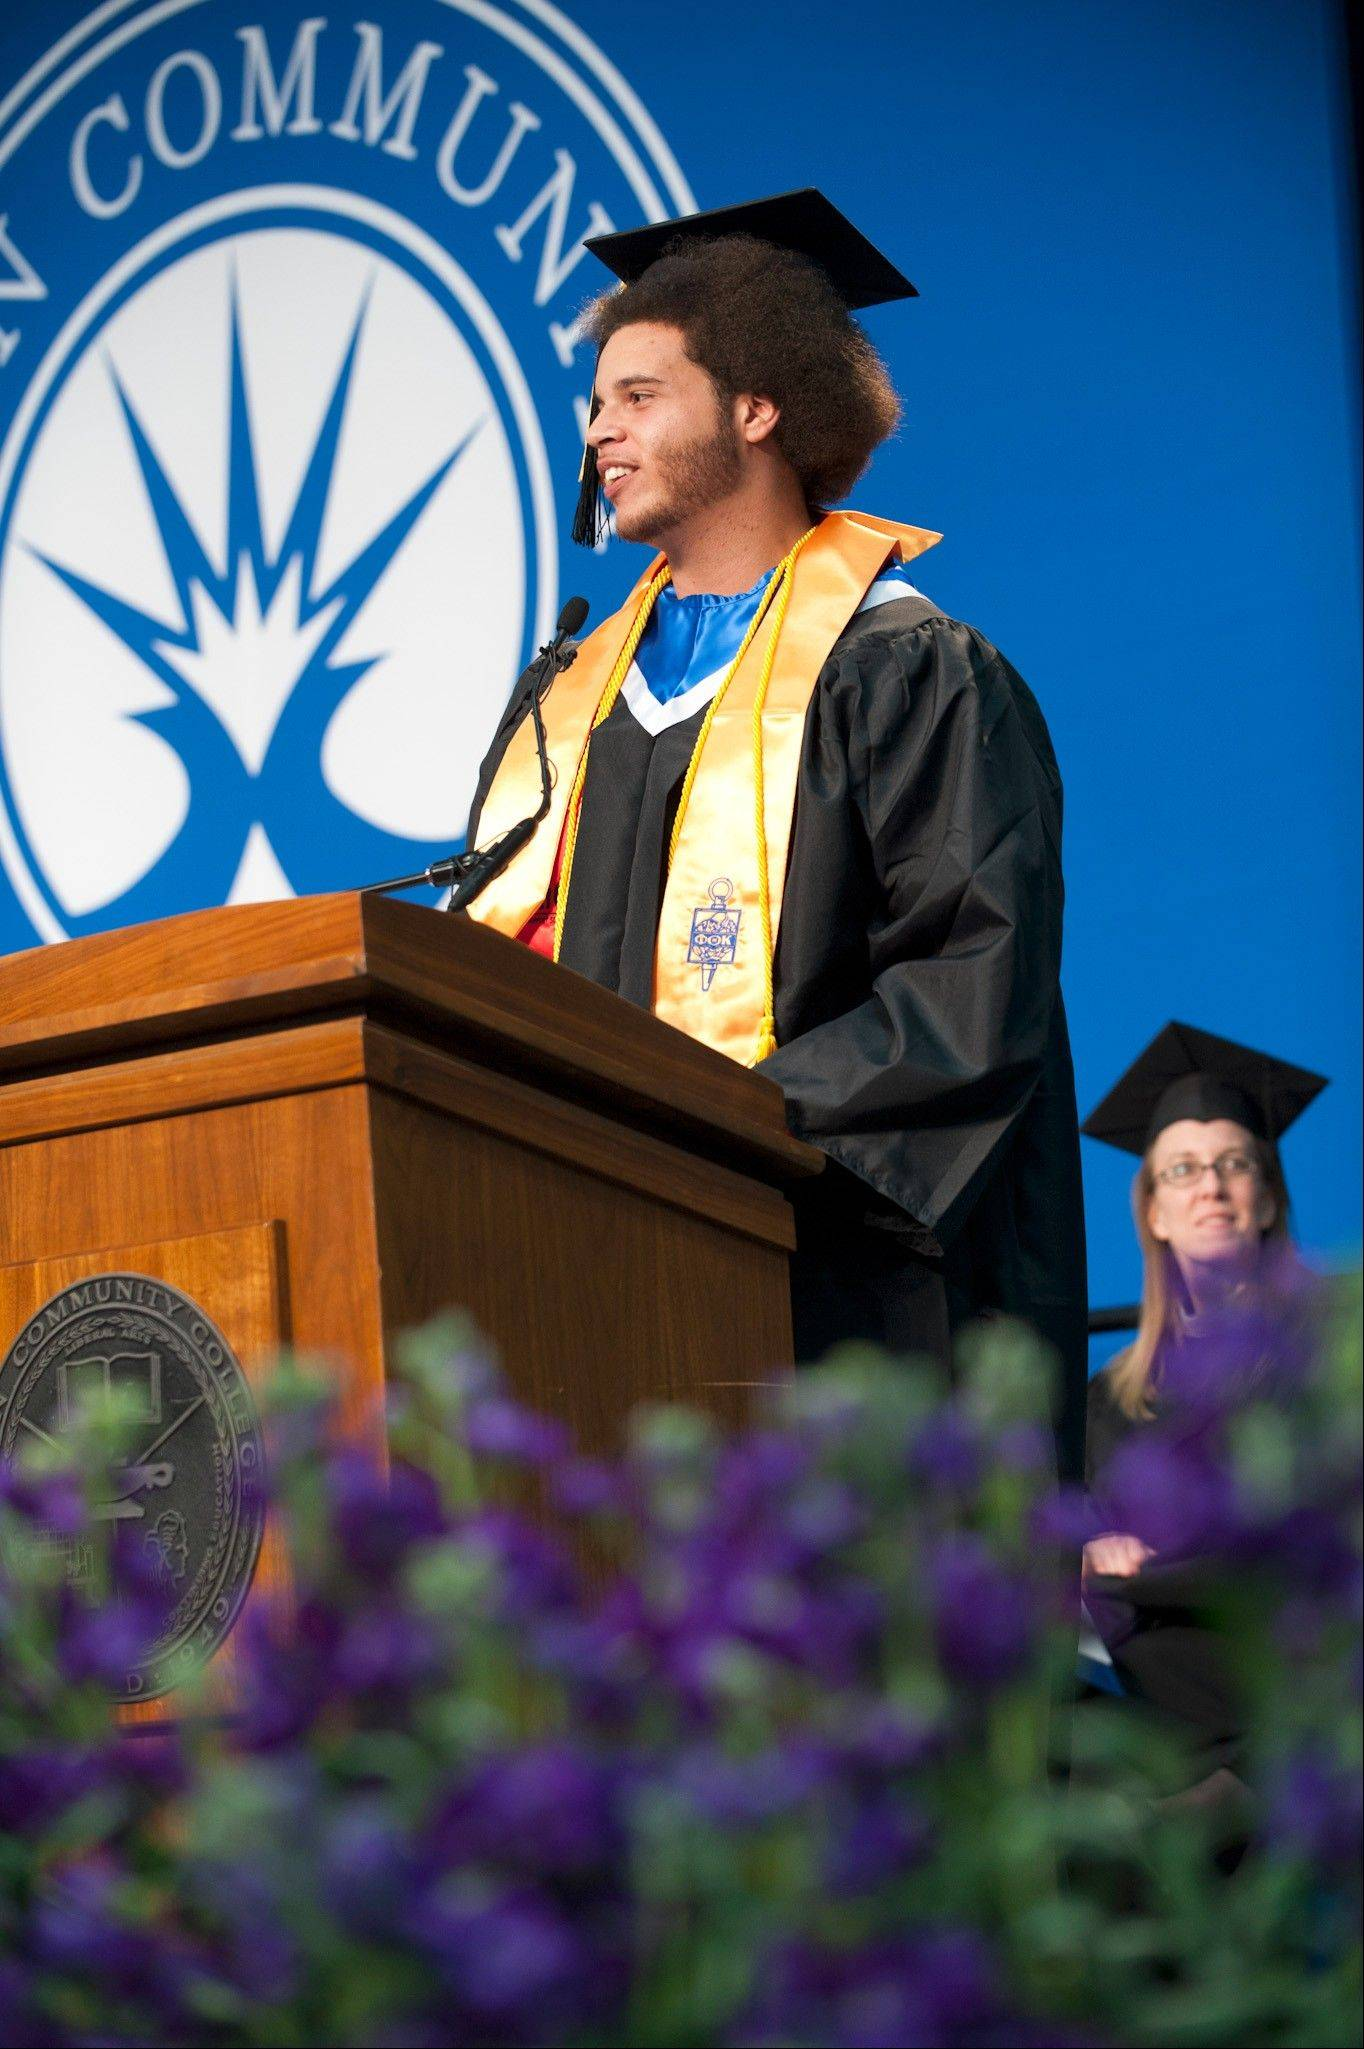 Bryan Lantz was the student speaker at Elgin Community College�s December commencement ceremony. Lantz graduated from Larkin High School in 2010 and plans to continue his education at Judson University next fall.